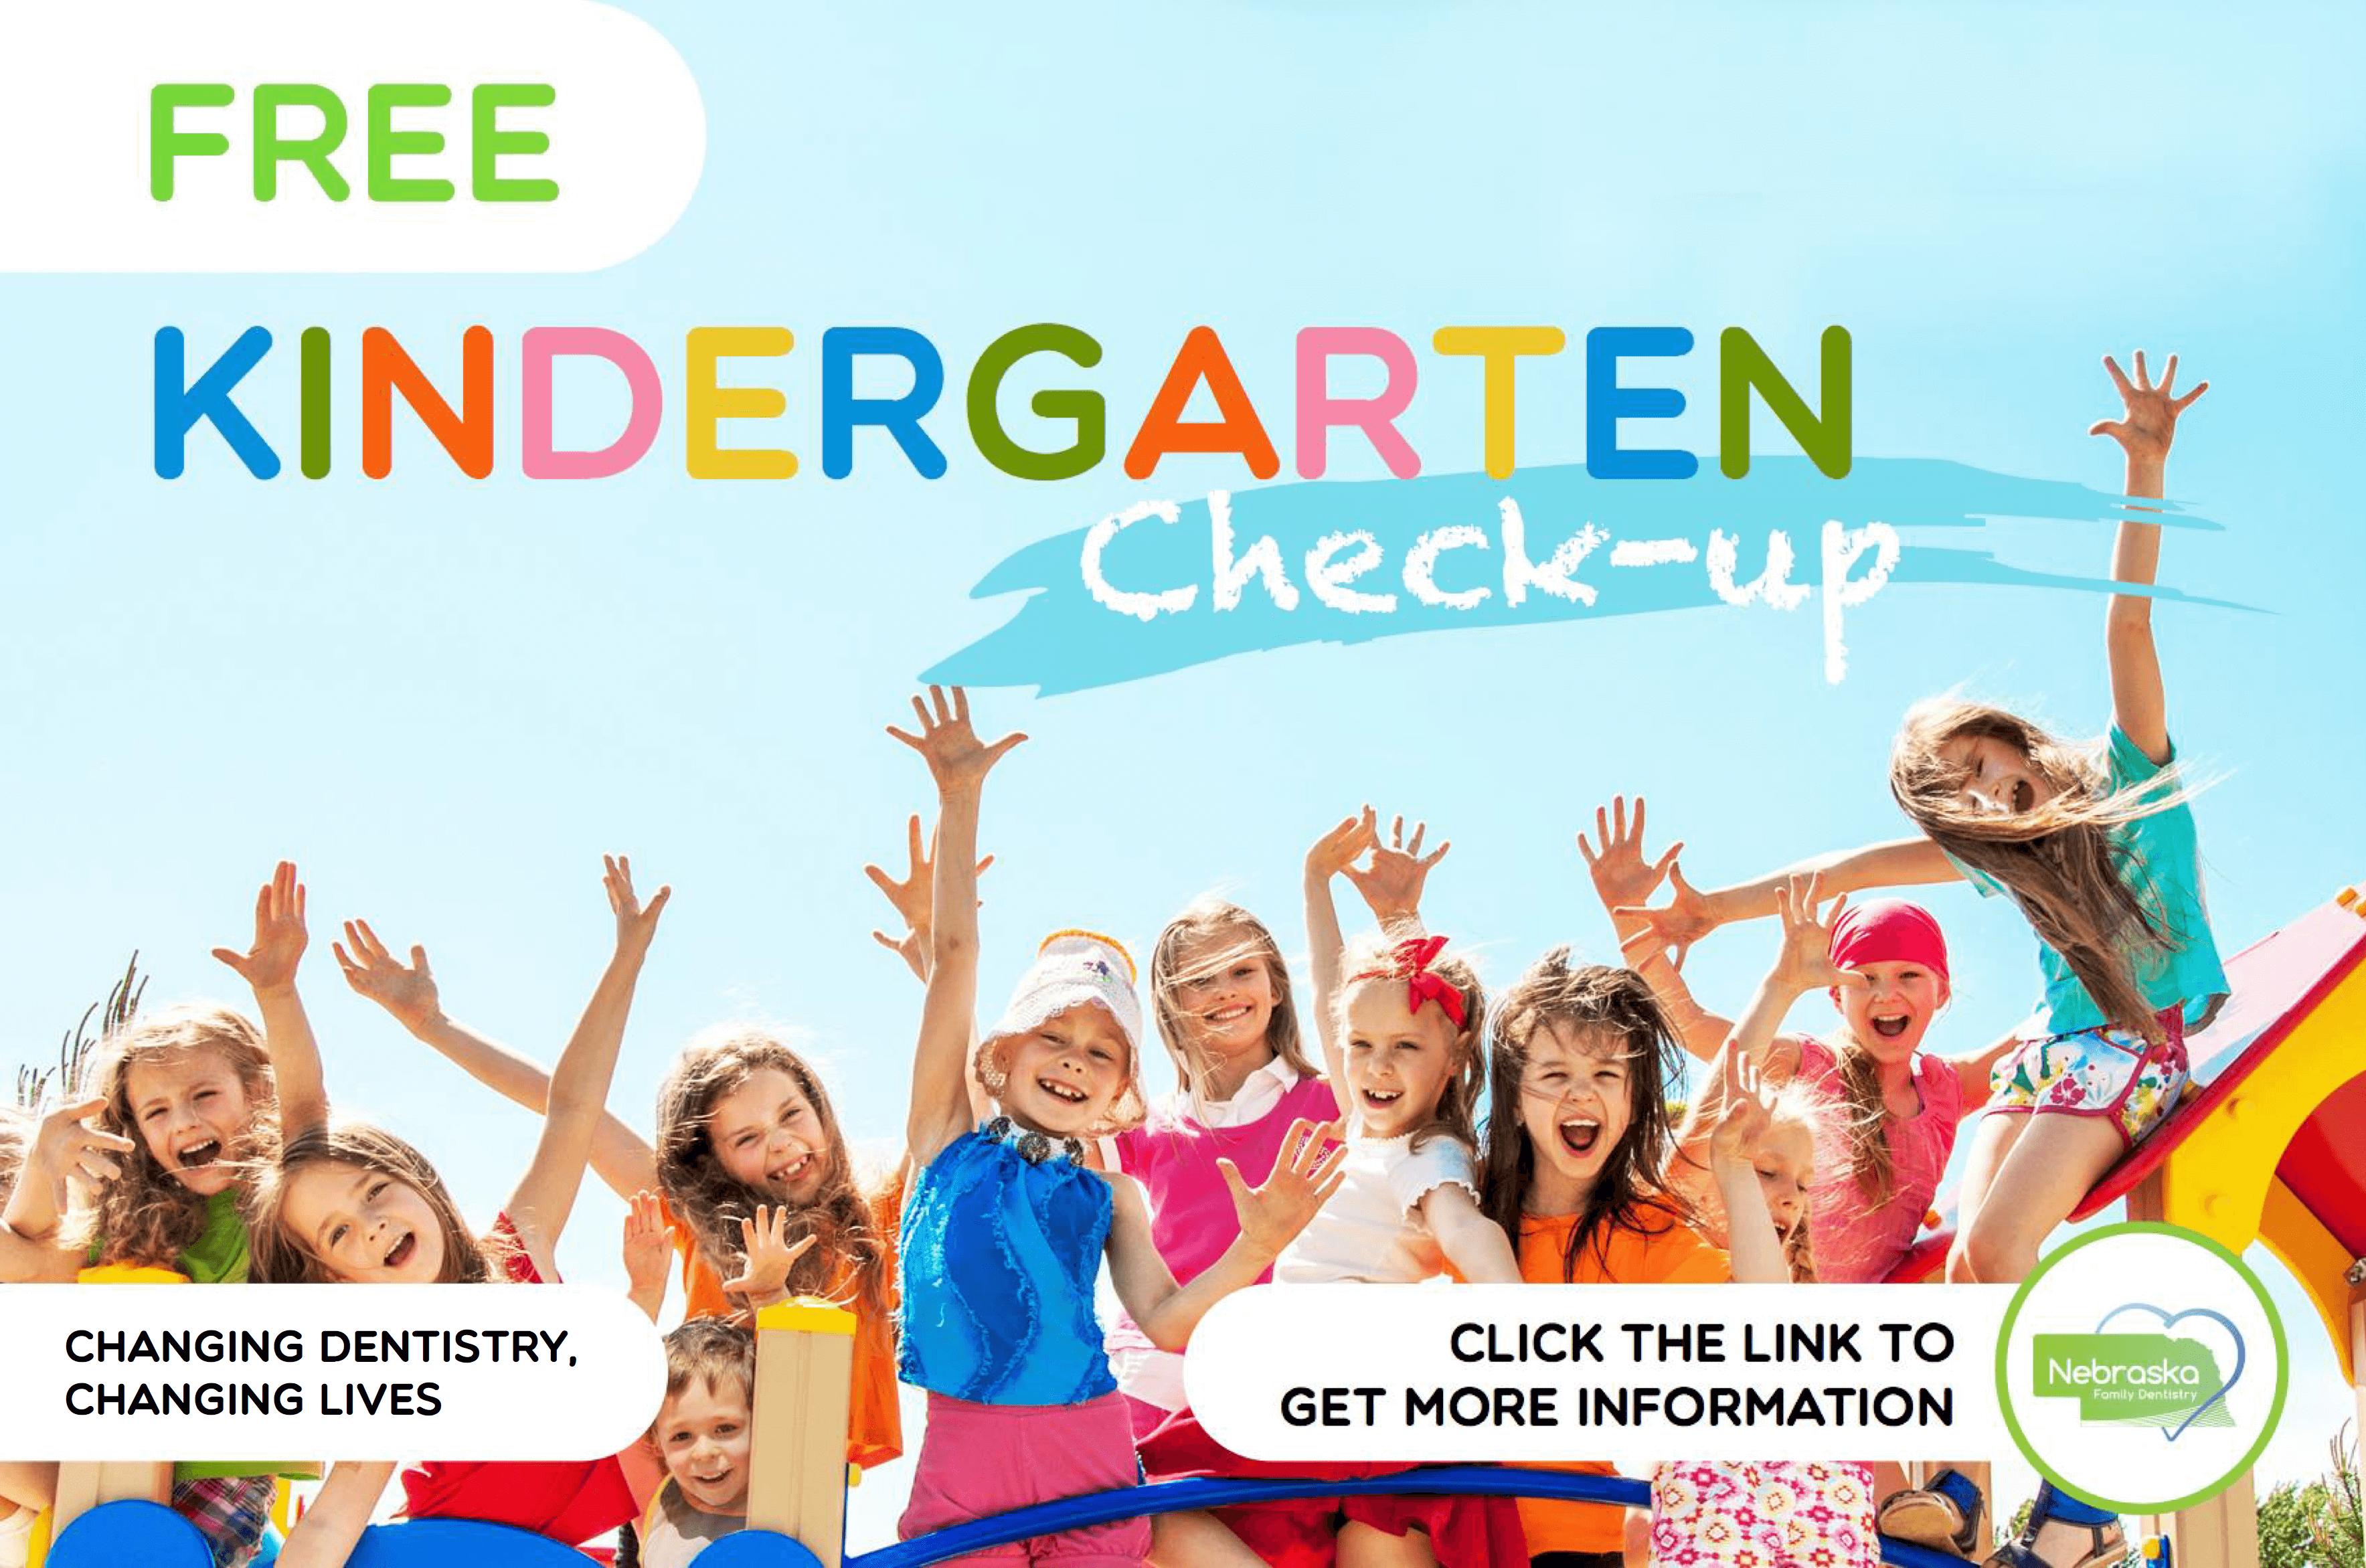 free kindergarden dental checks for health events Lincoln NE